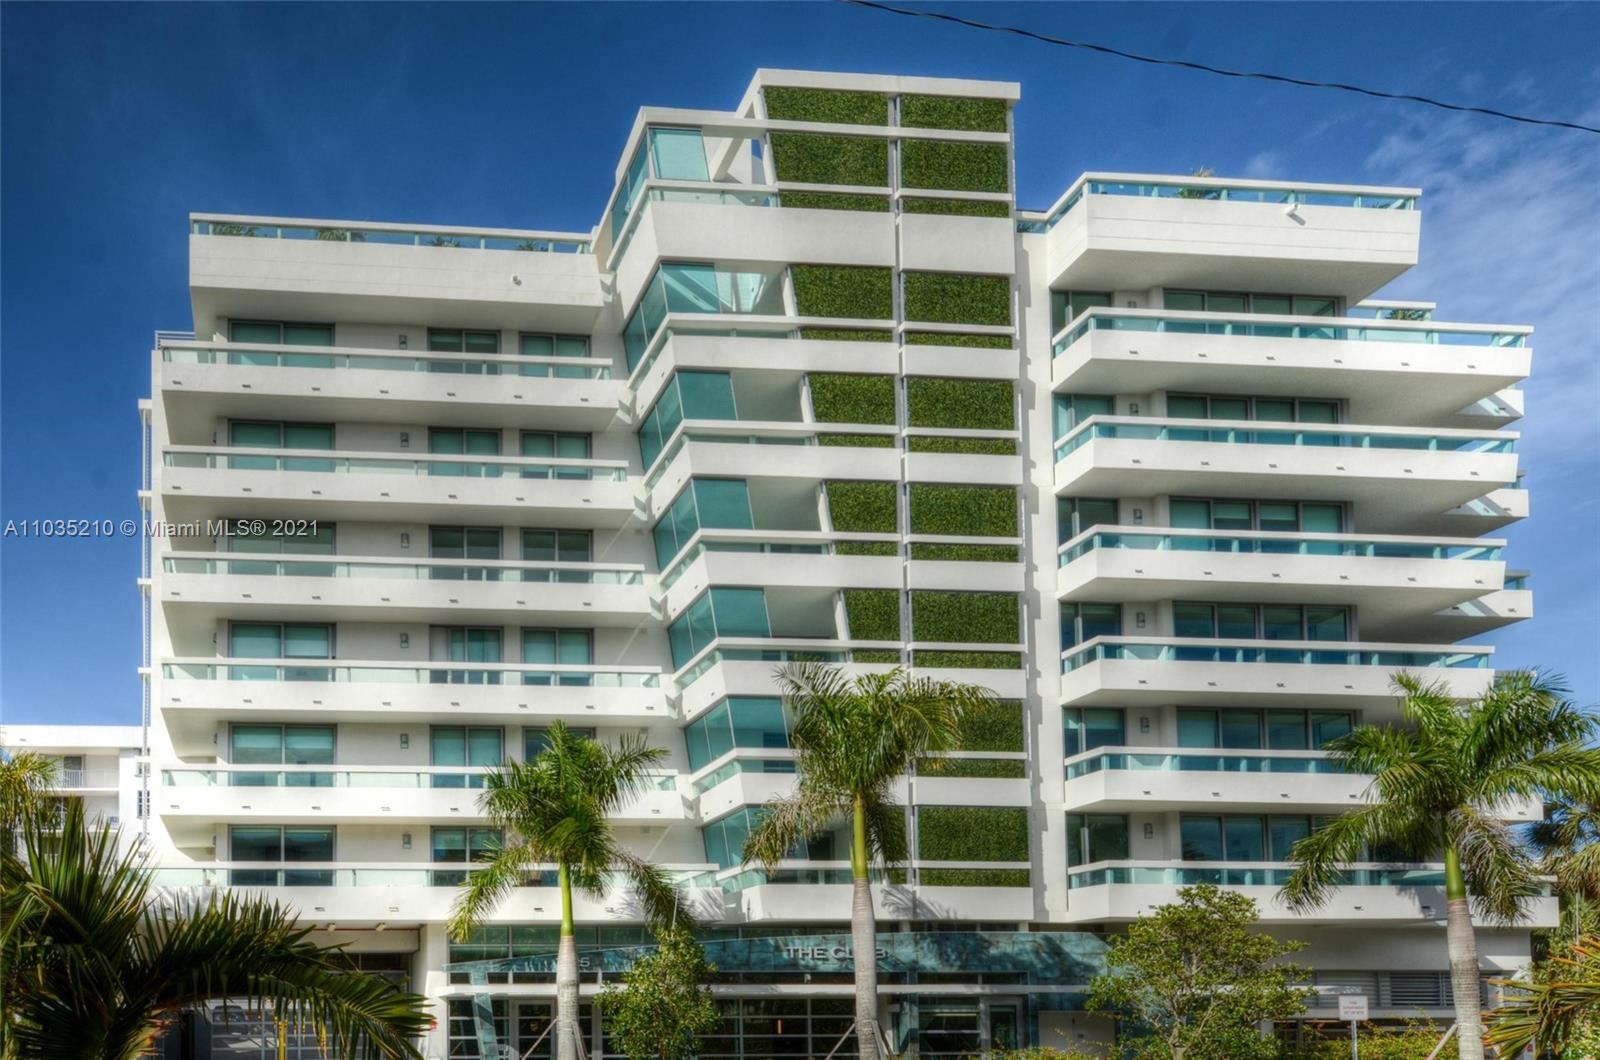 This modern/elegant SW corner unit is located in the heart of Bay harbor Islands. It is fully equipped with BOSCH appliances, wine cooler and washer/dryer combo. Lots of natural light from floor to ceiling windows and slighting doors. Additional storage included. Fabulous rooftop deck featuring infinity pool, Jacuzzi, BBQ/ entertainment area. Blocks away from great public schools, Bal Harbour shops and beaches. Currently tenant occupied until 12/31/2021.